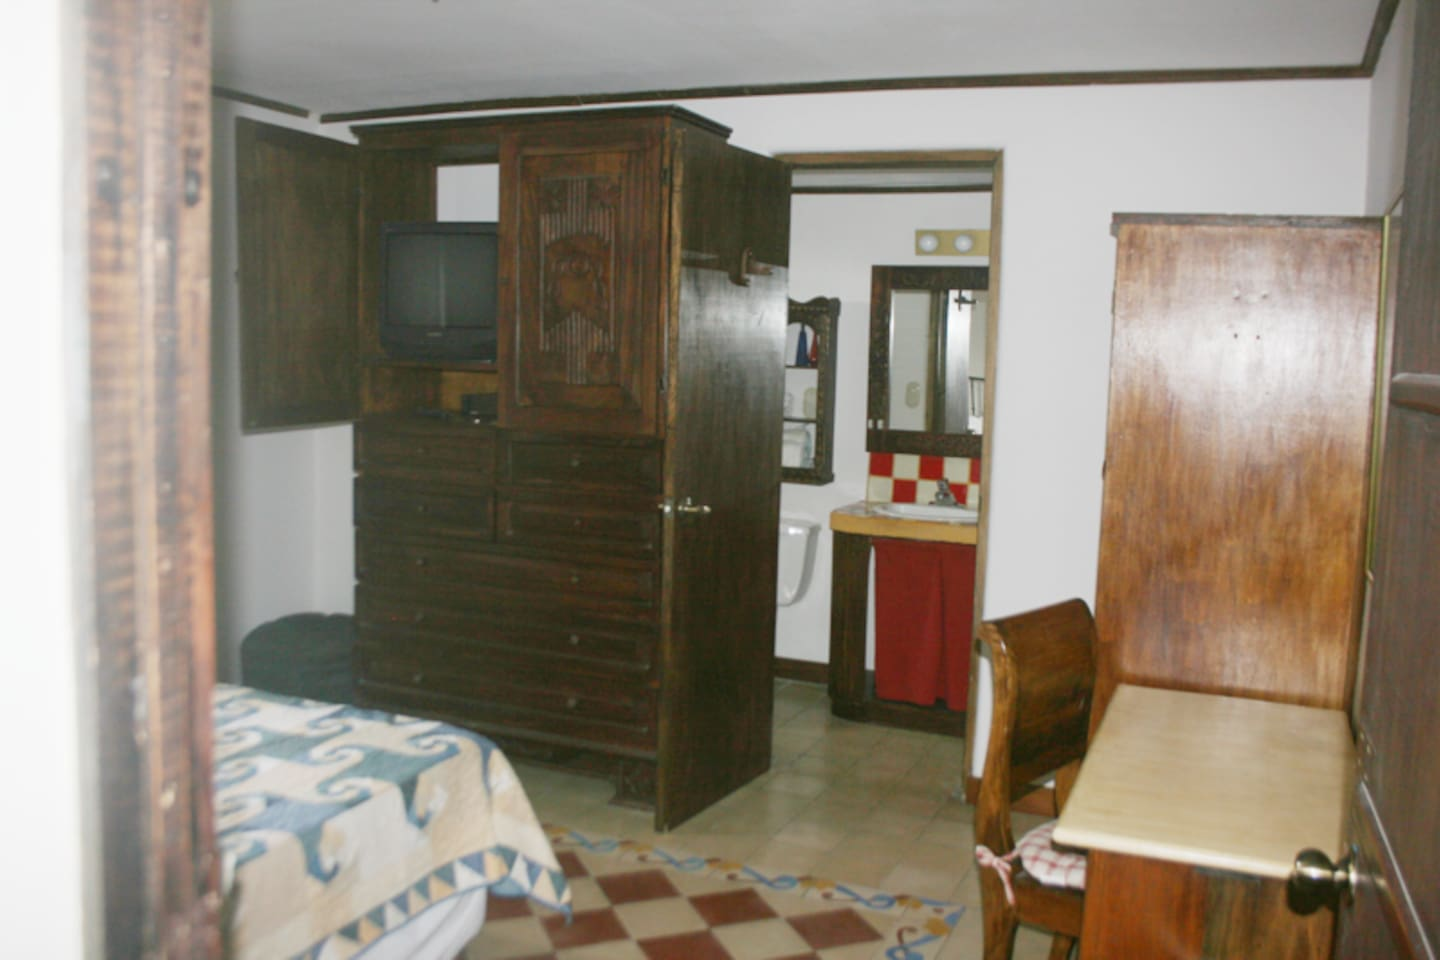 Same room, different angle and somewhat smaller bed. There's a small desk, a chair, and beside that there's a closet with hangers. Under the TV there are drawers for you to put your things. The open door you see is the door to the private bathroom.